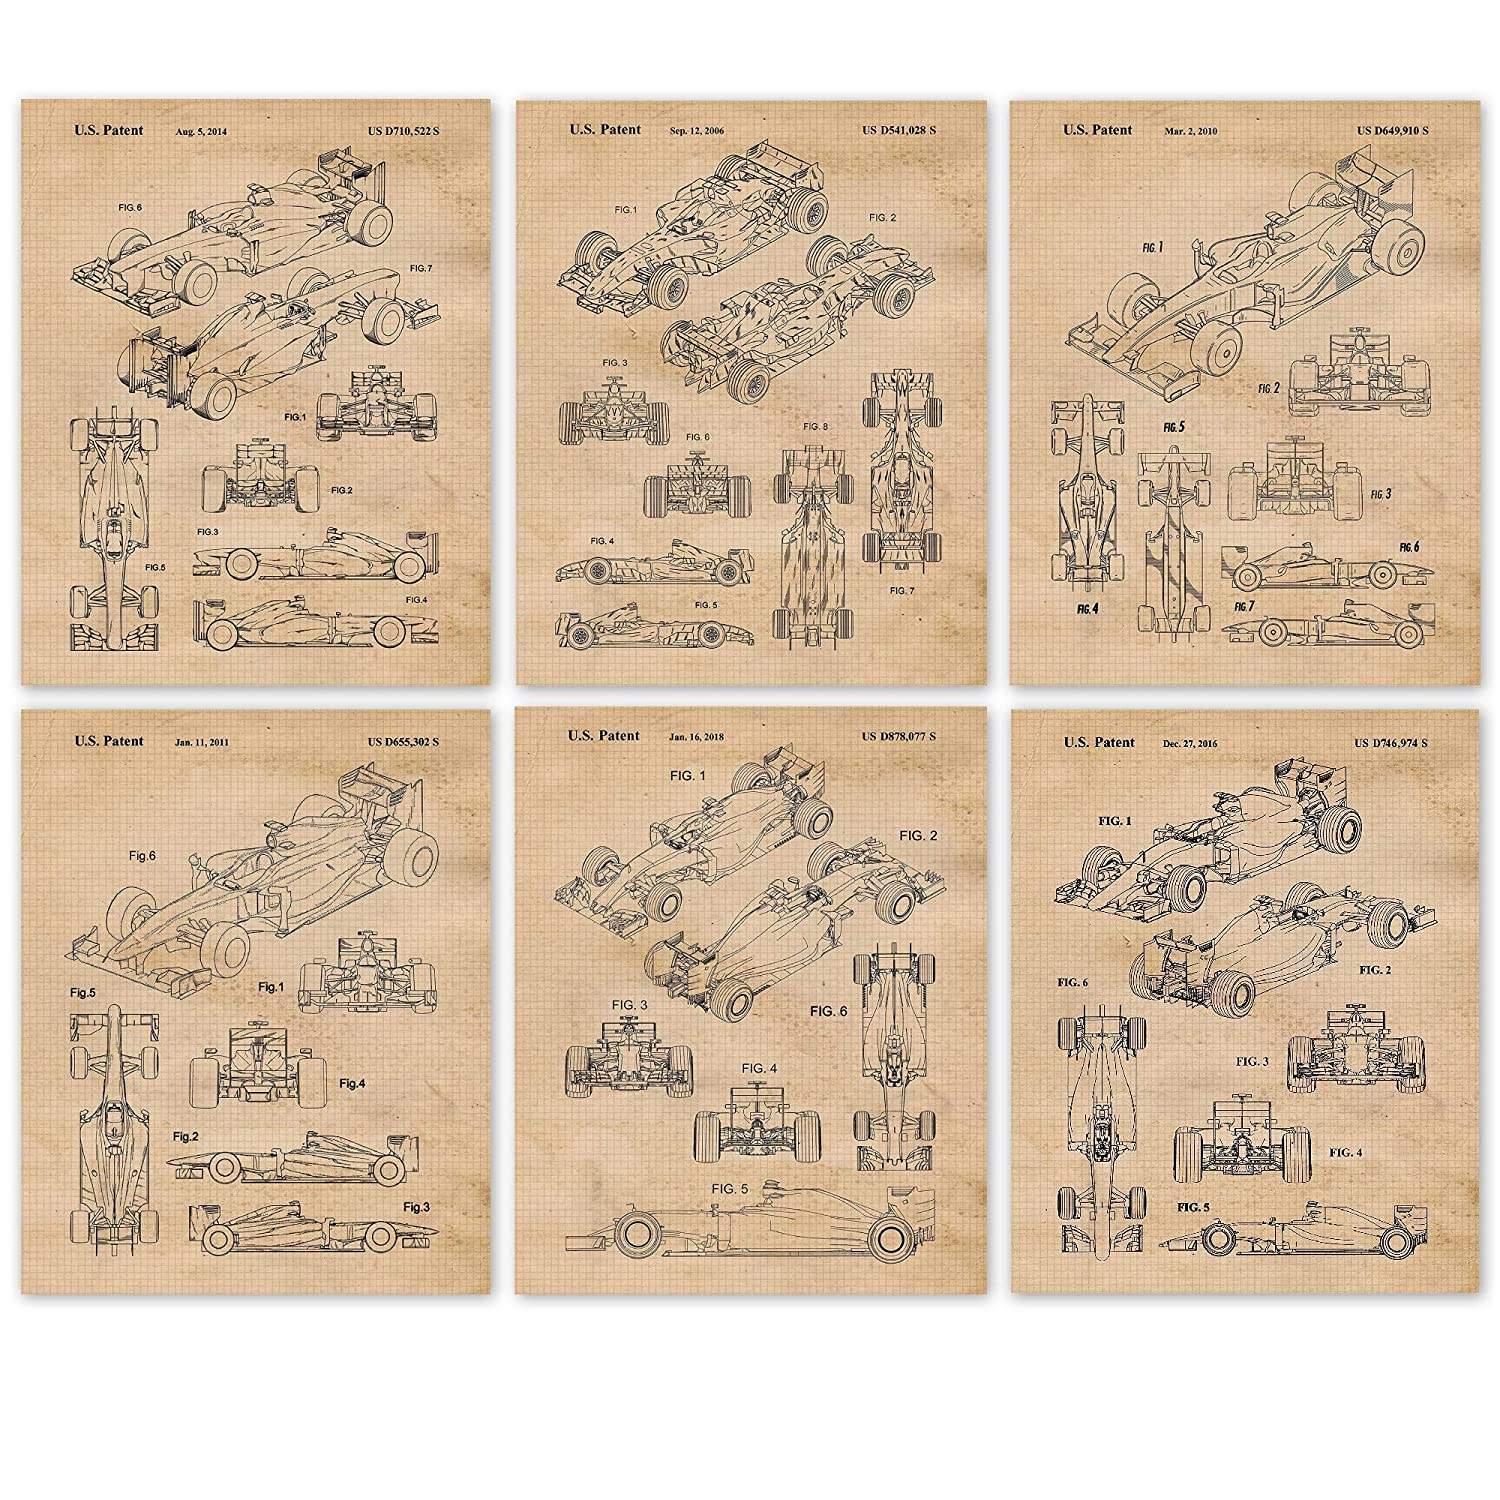 Amazon Com Vintage Ferrari F1 Indy Racing Patent Poster Prints Set Of 6 8x10 Unframed Photos Wall Art Decor Gifts Under 20 For Home Office Studio Garage Shop Man Cave College Student Formula